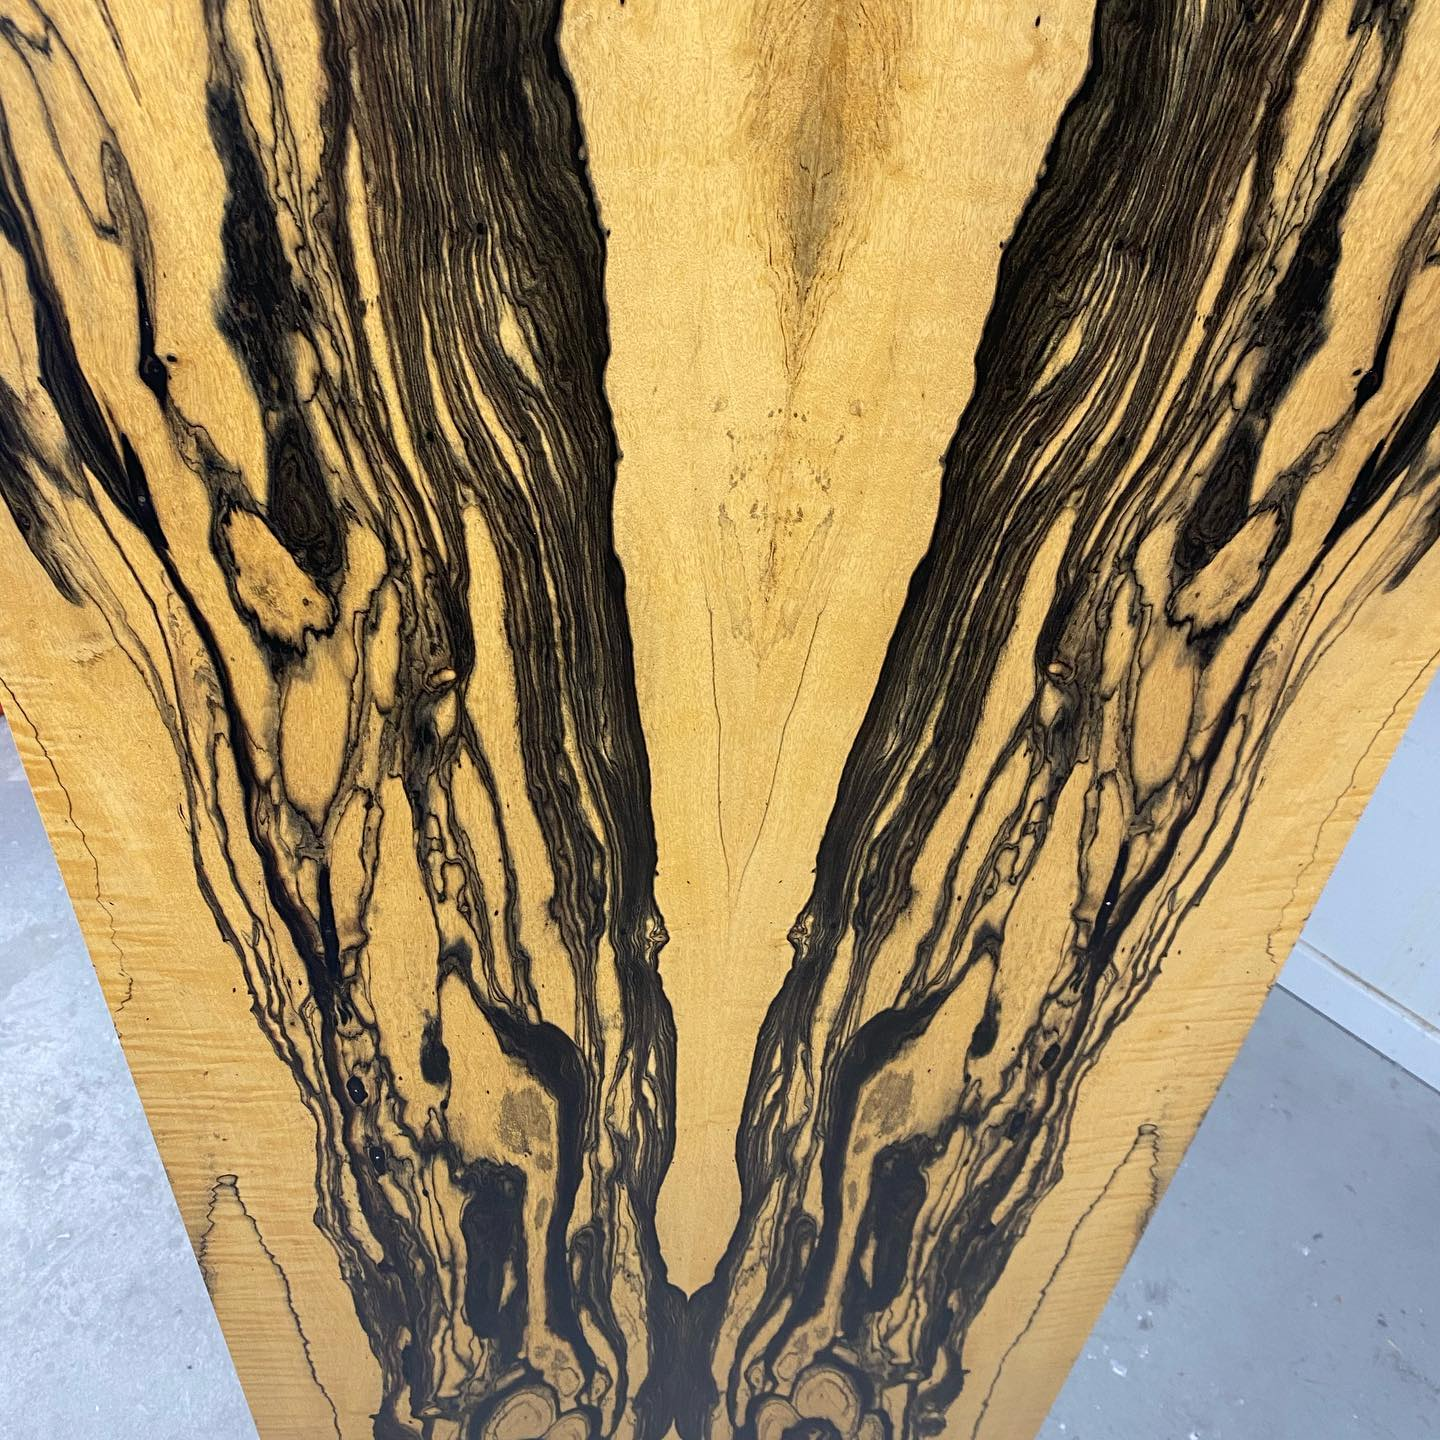 Royal ebony, walnut vanity cabinet and door detail, walnut burl, and some misc parts being finished.